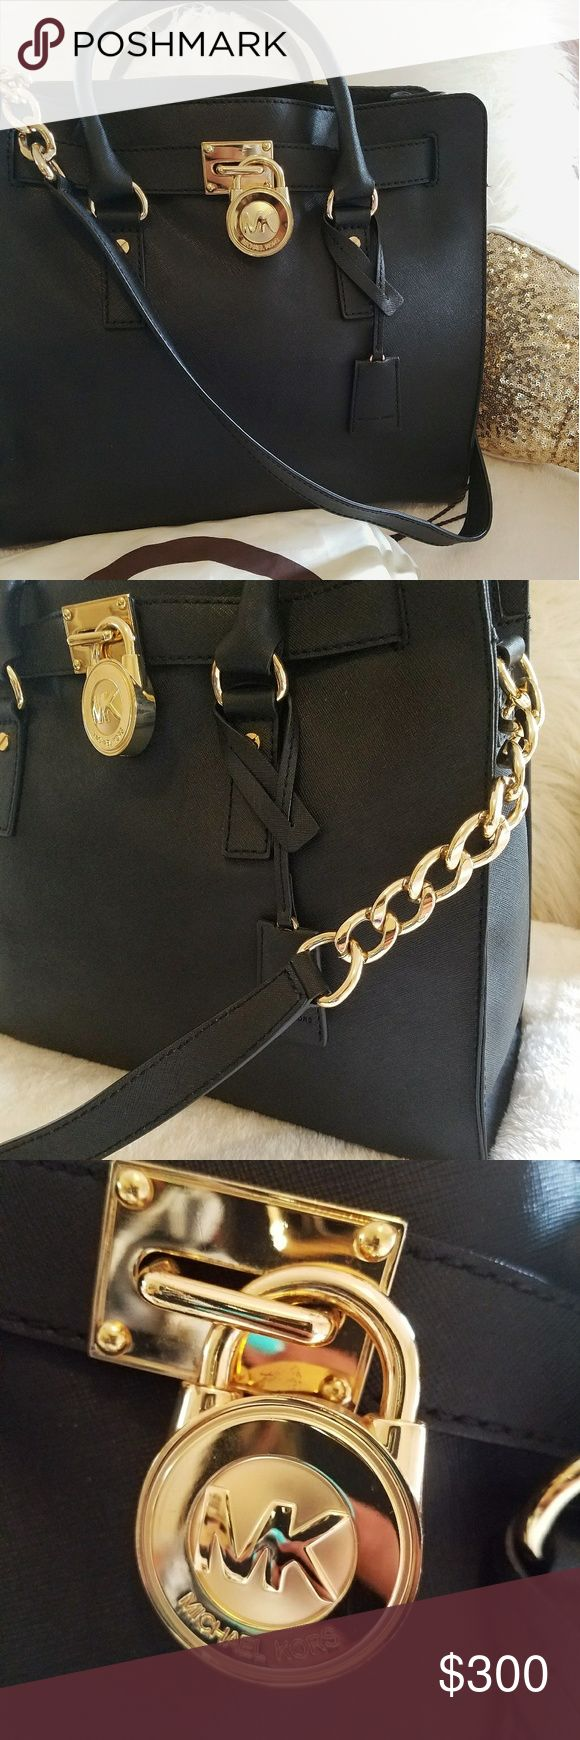 Authentic Michael Kors Hamilton Large Tote Large black hamilton tote. Gently used/ like new. Inside of bag is in excellent condition. Comes with dust bag and care card. Michael Kors Bags